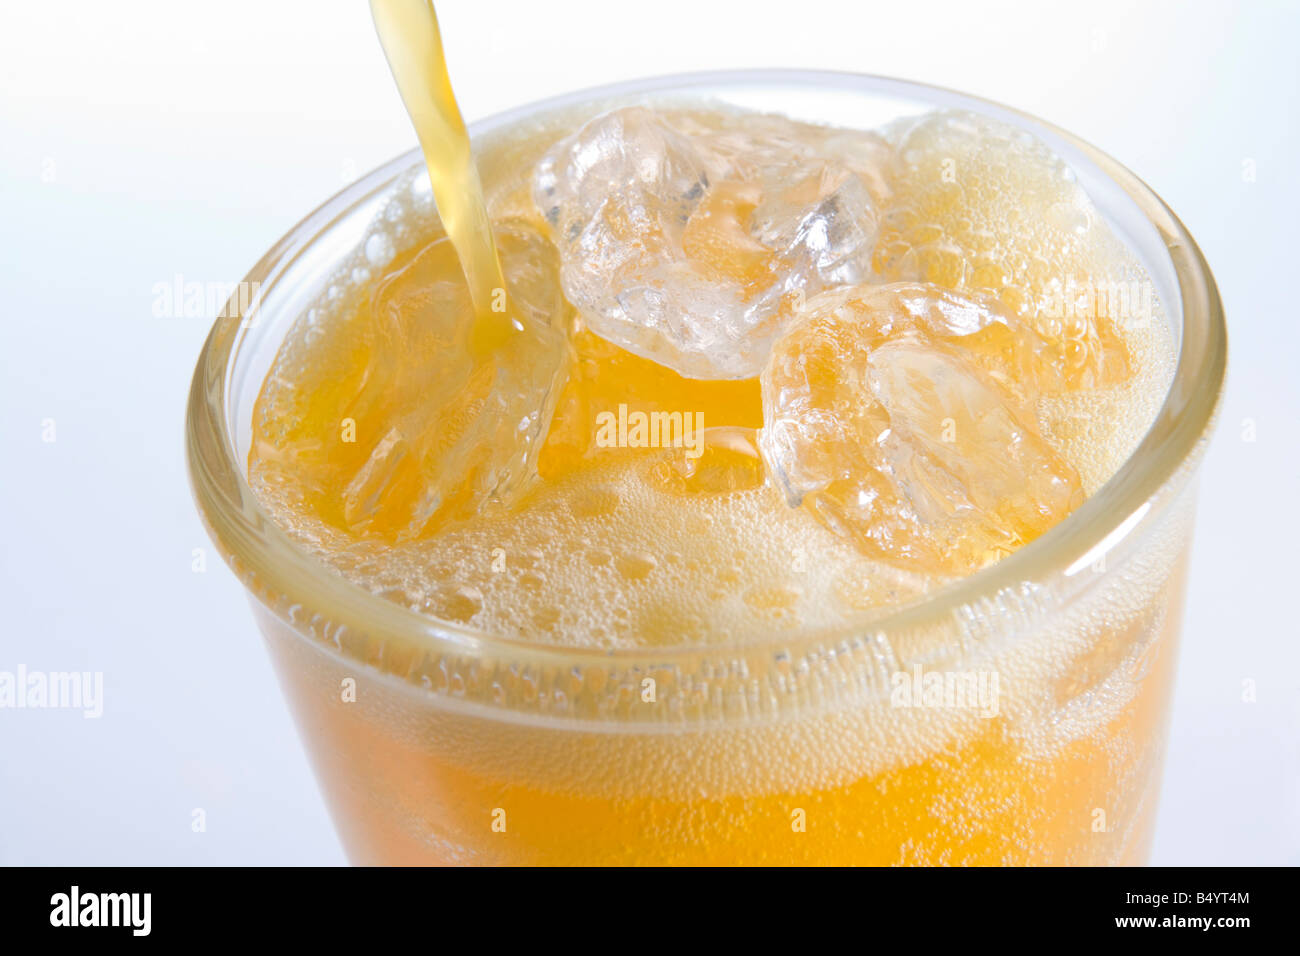 Pouring Orangeade Into A Glass Of Ice - Stock Image